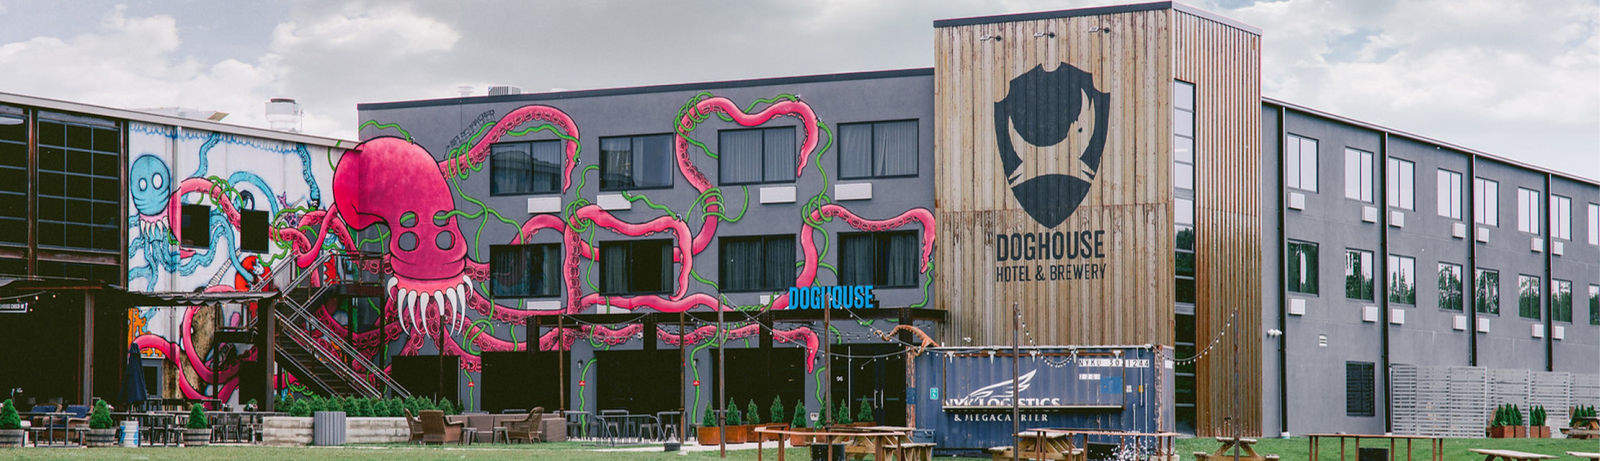 Doghouse Hotel Brewery